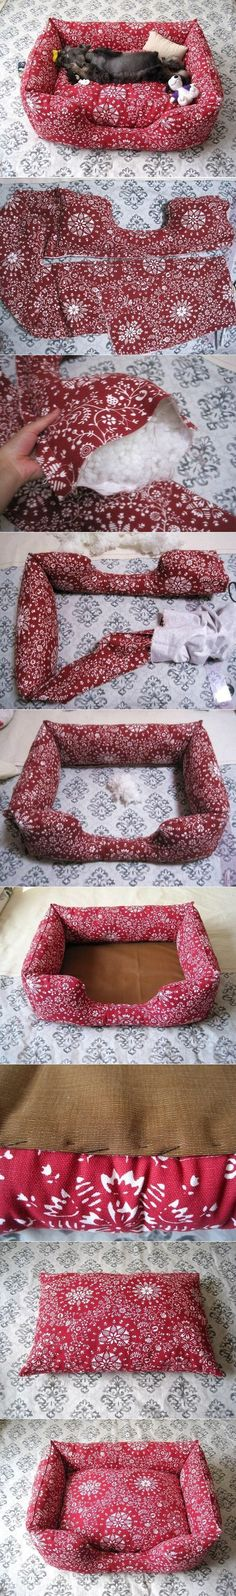 Sofa dog bed DIY